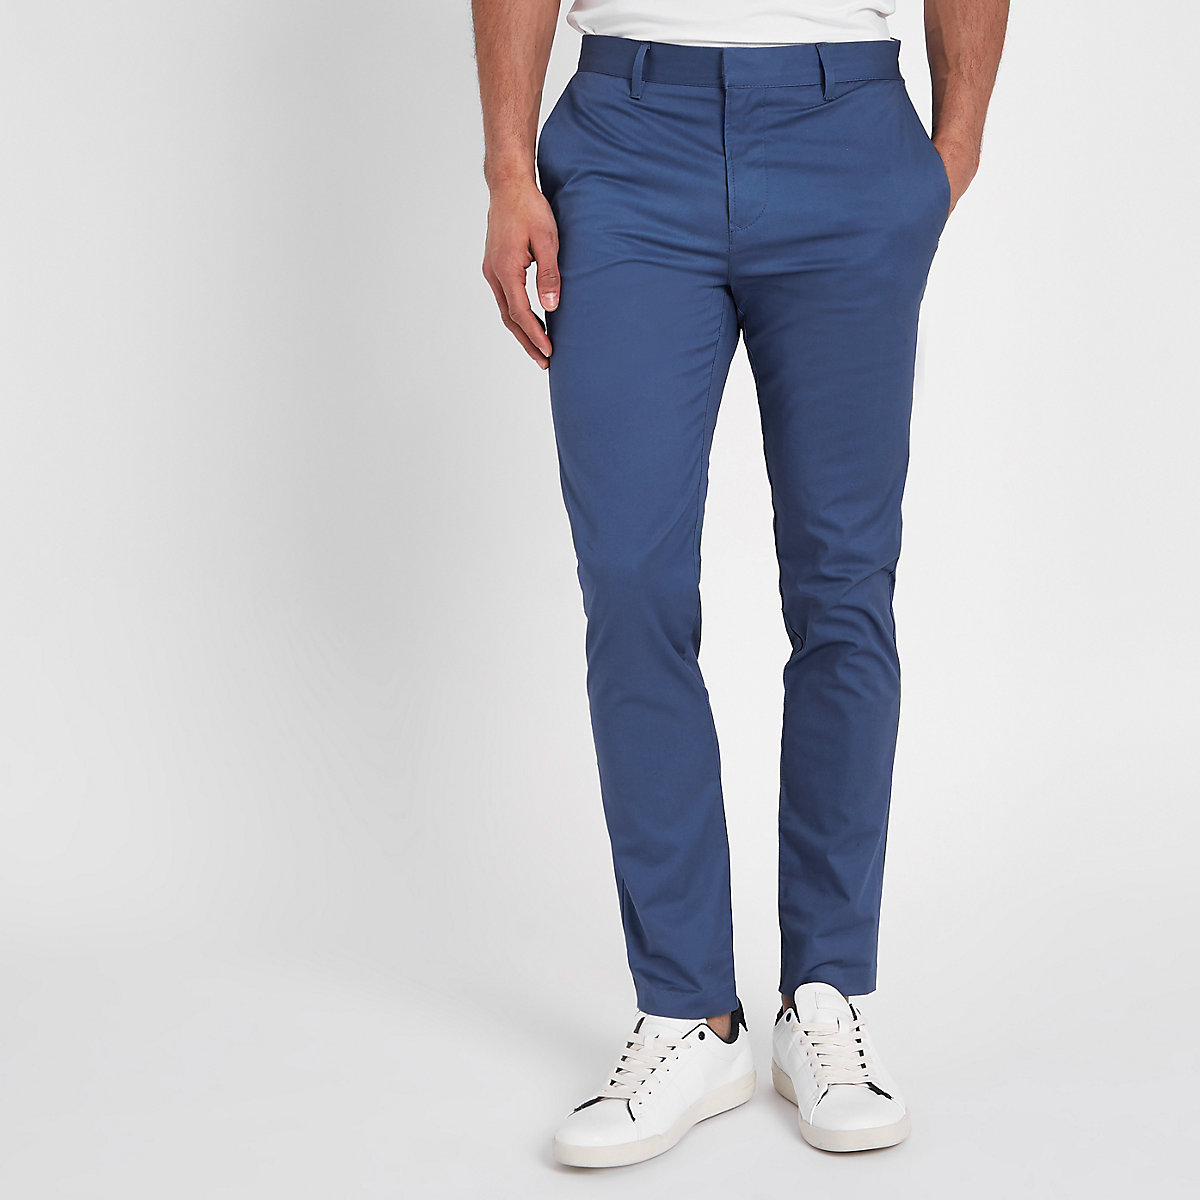 Blue skinny chino trousers